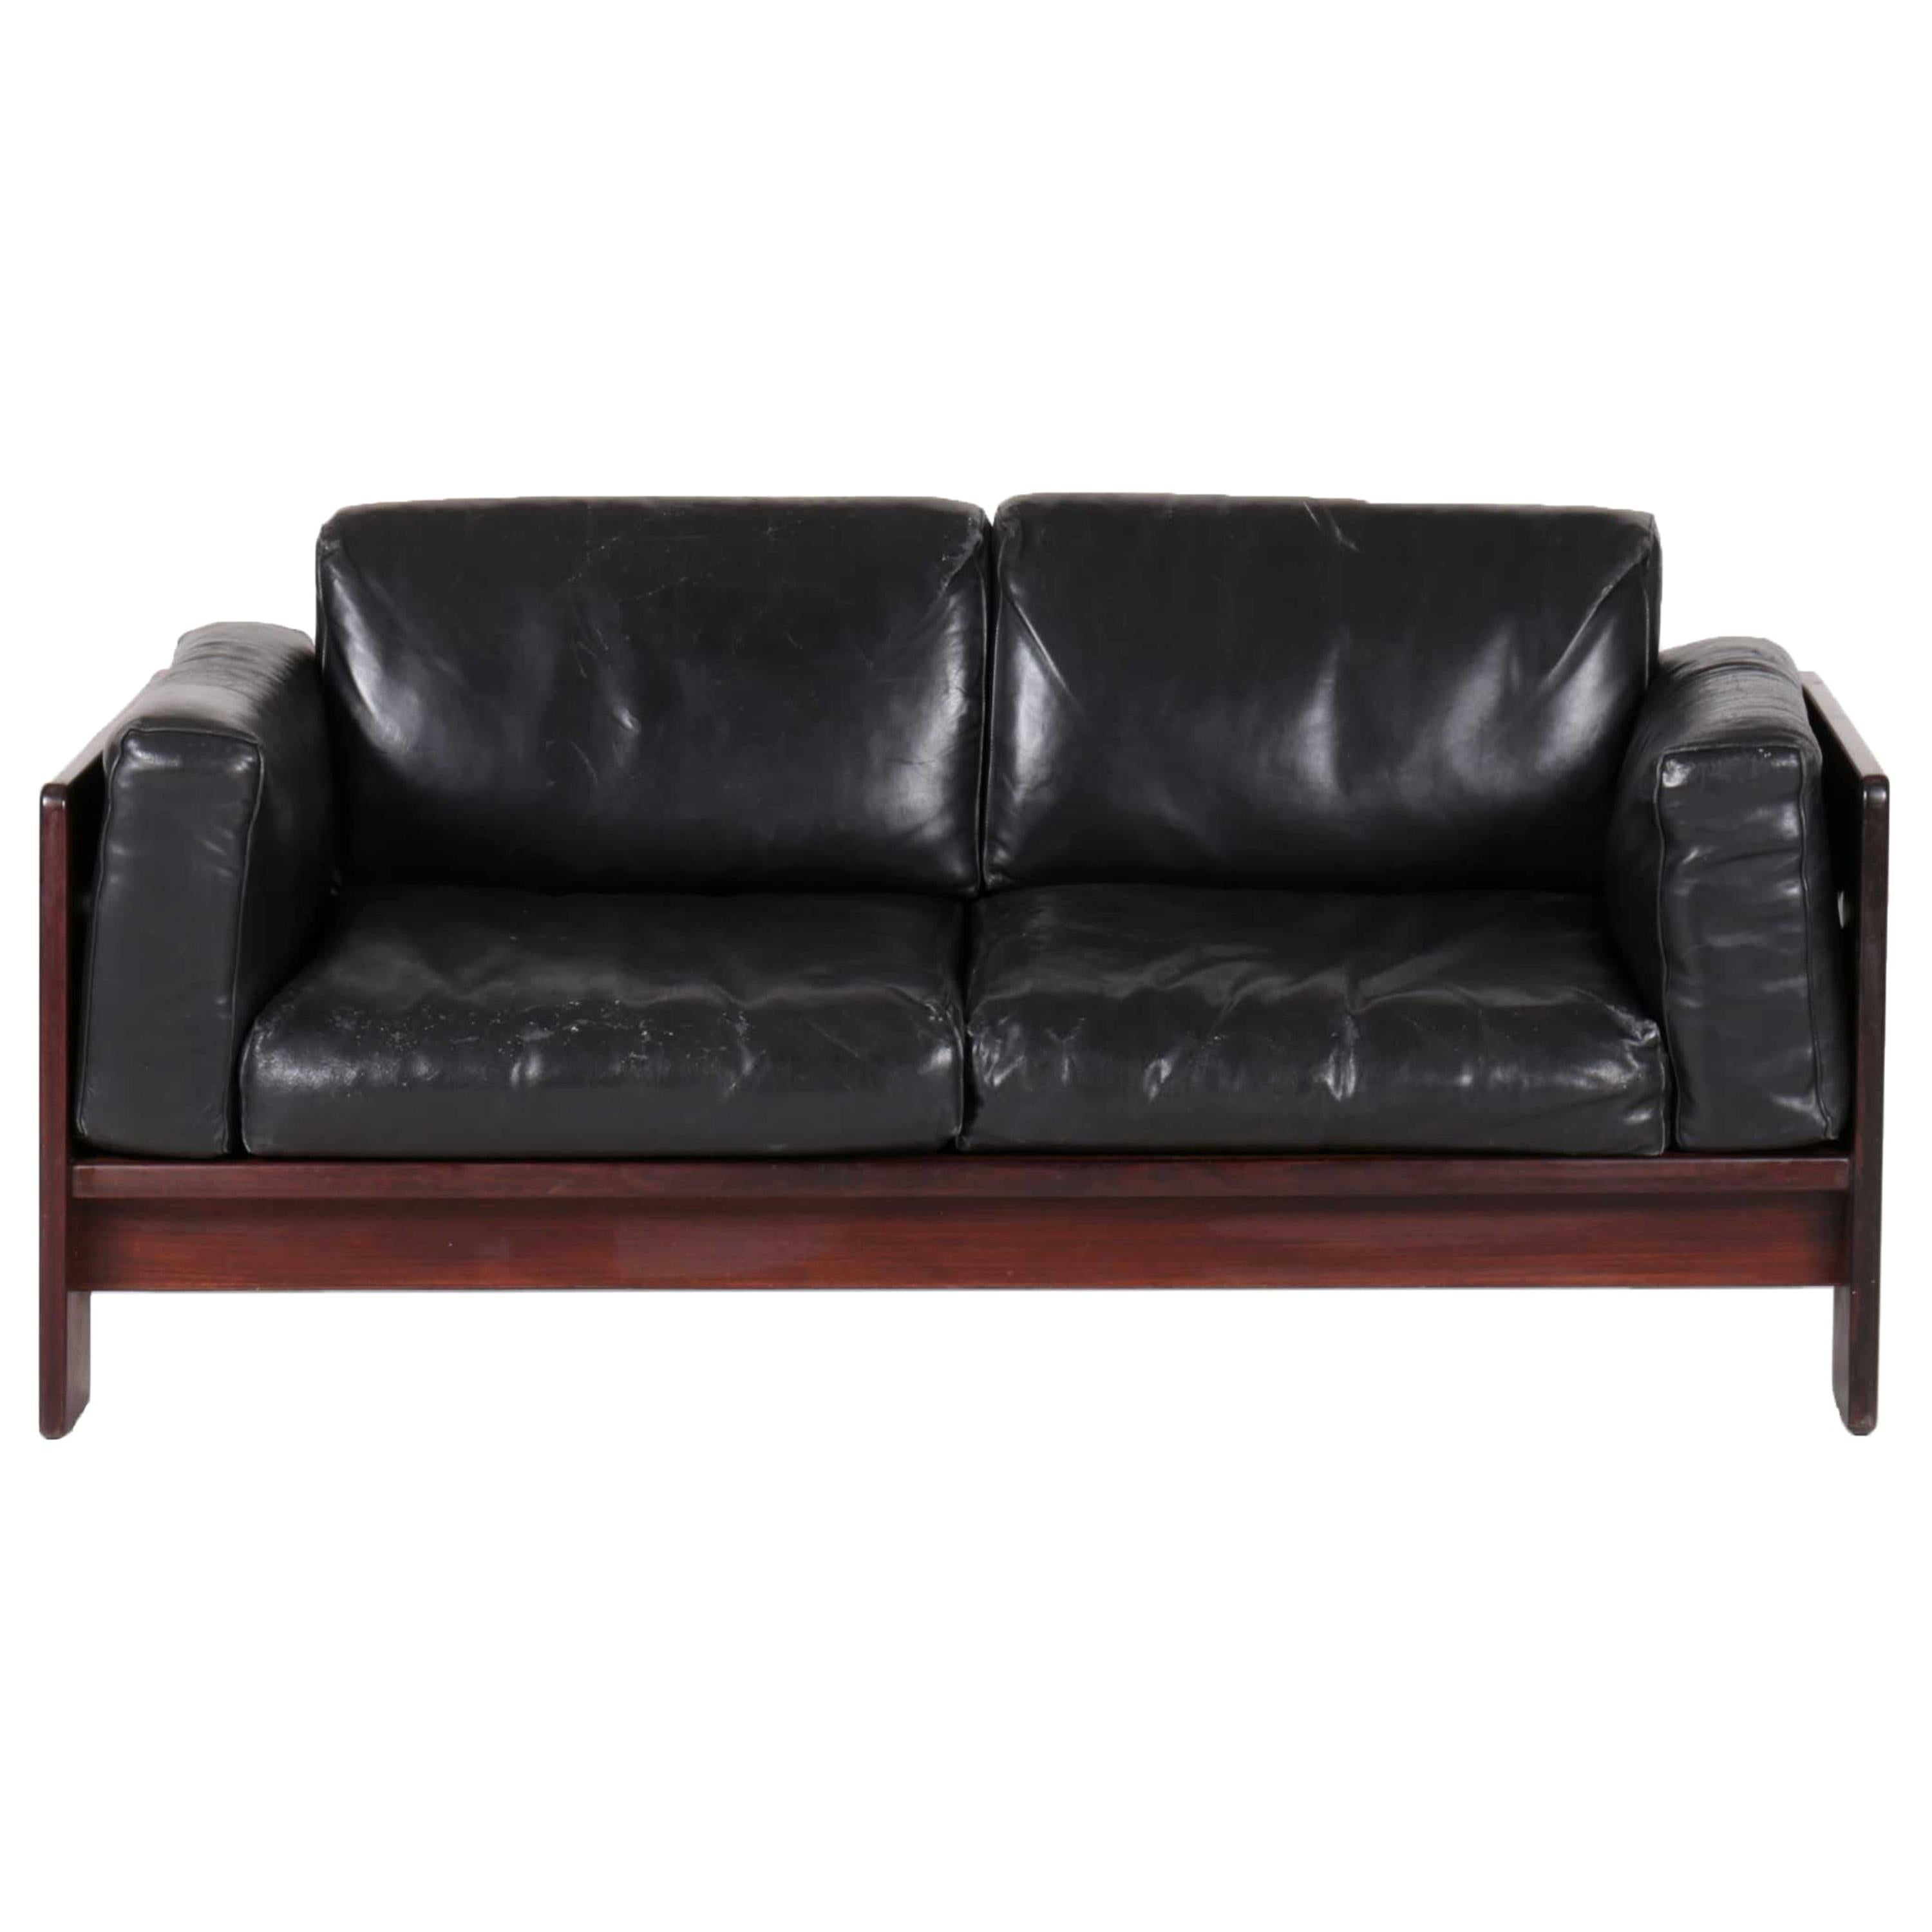 Bastiano 2 Seater Sofa in Wood by Tobia Scarpa